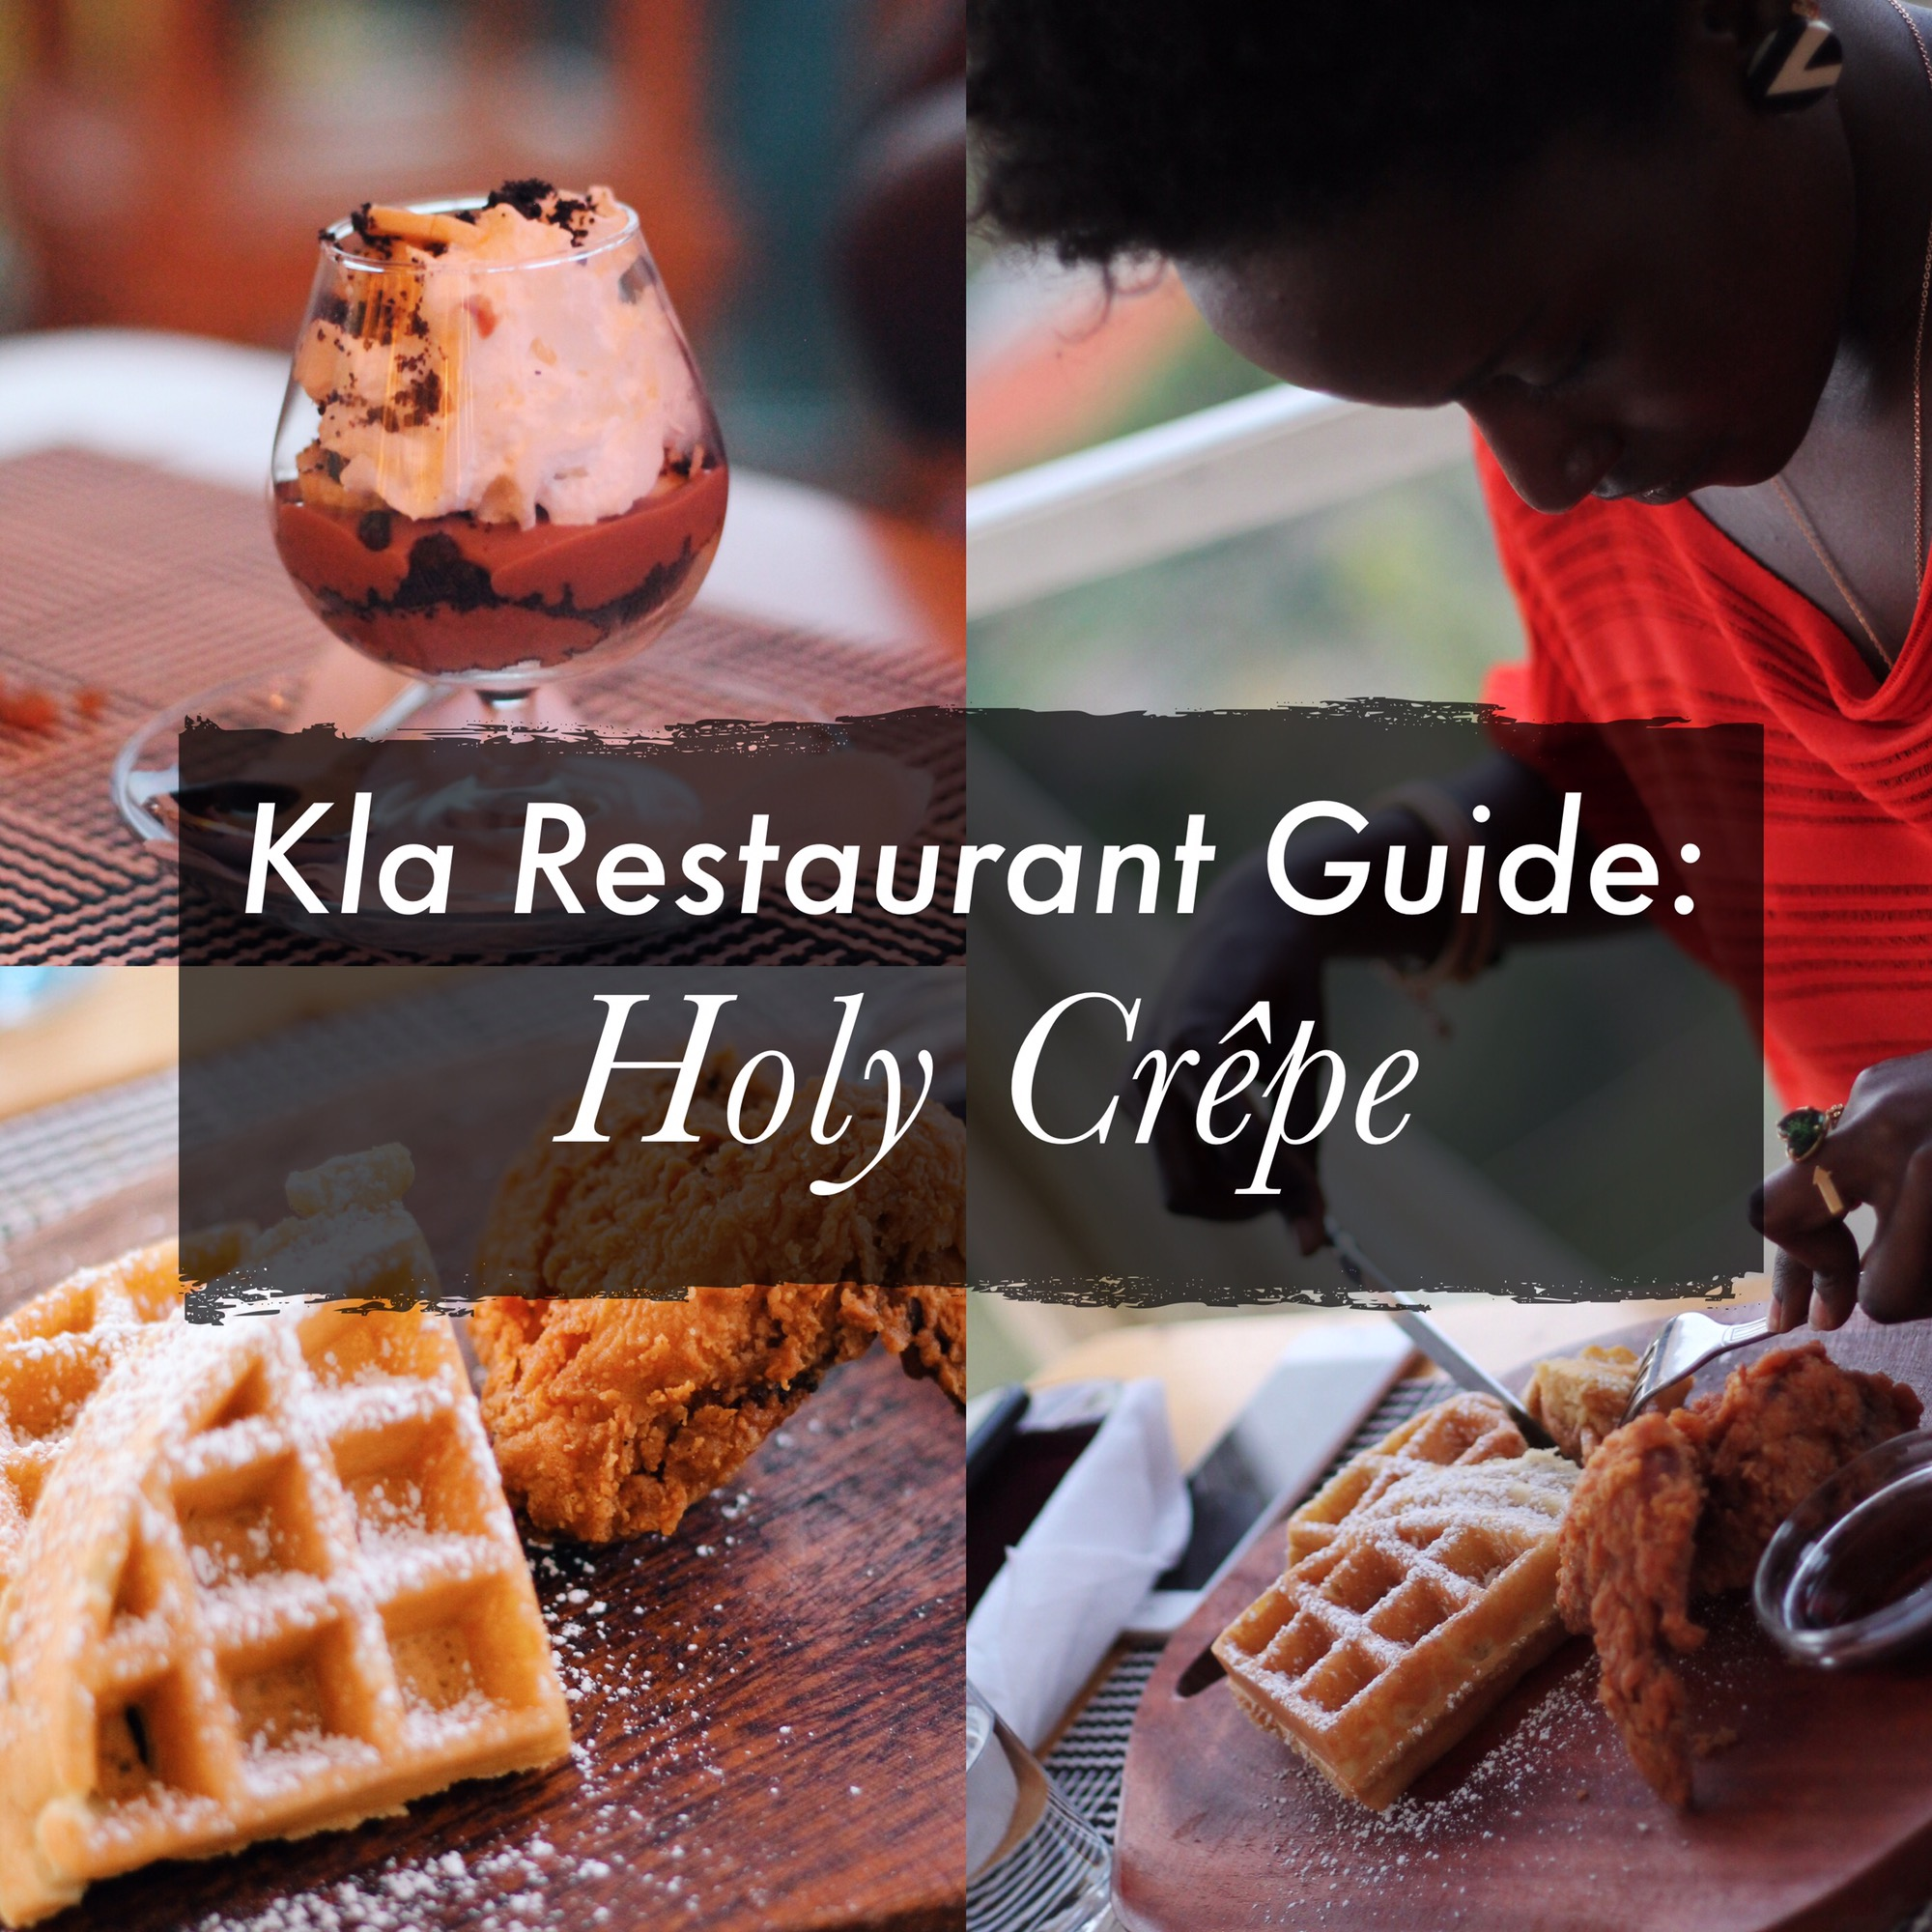 holy crêpe uganda, best restaurants places to eat to try in kampala, where to eat in uganda kampala, kampala uganda blogger, food blog, kampala, uganda